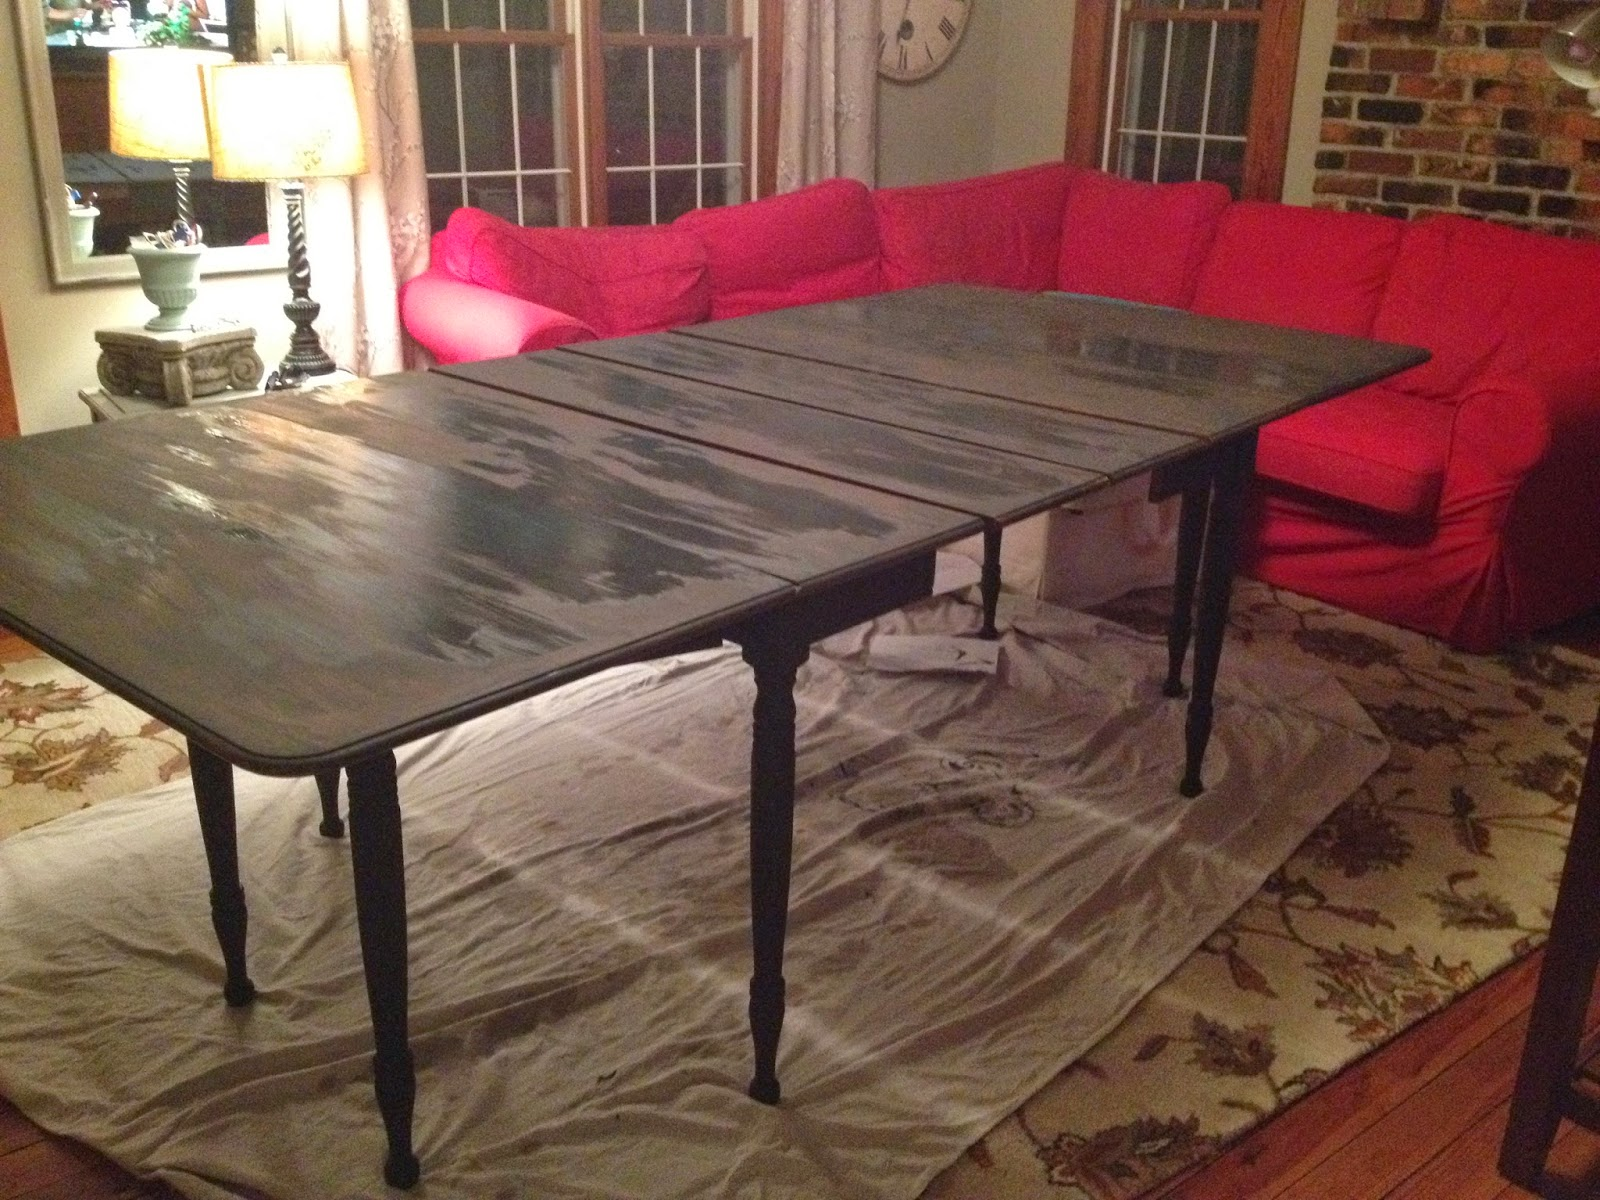 Vintage Restyled Dining Table Redo